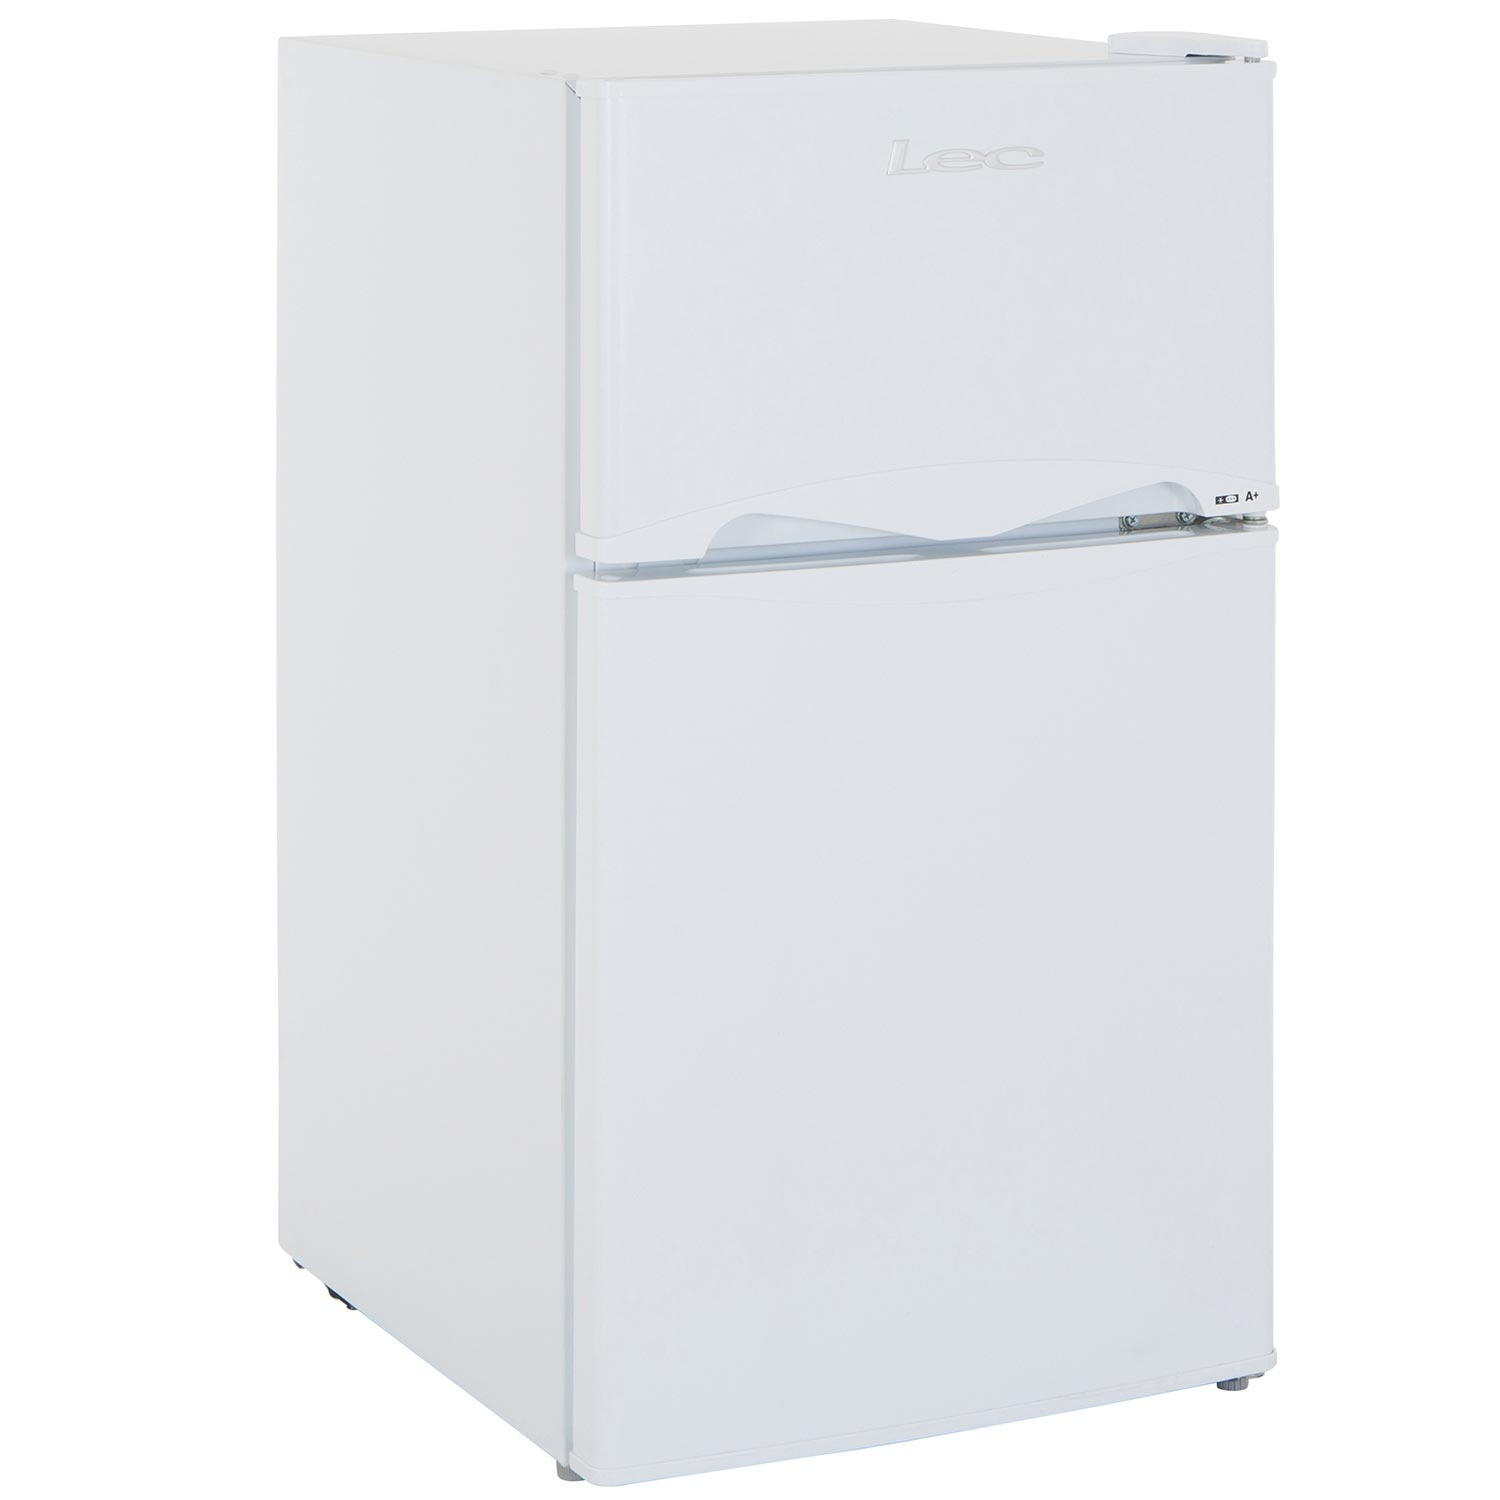 Lec 50cm Under Counter Manual-Defrost Fridge Freezer - White - A+ Rated - 1